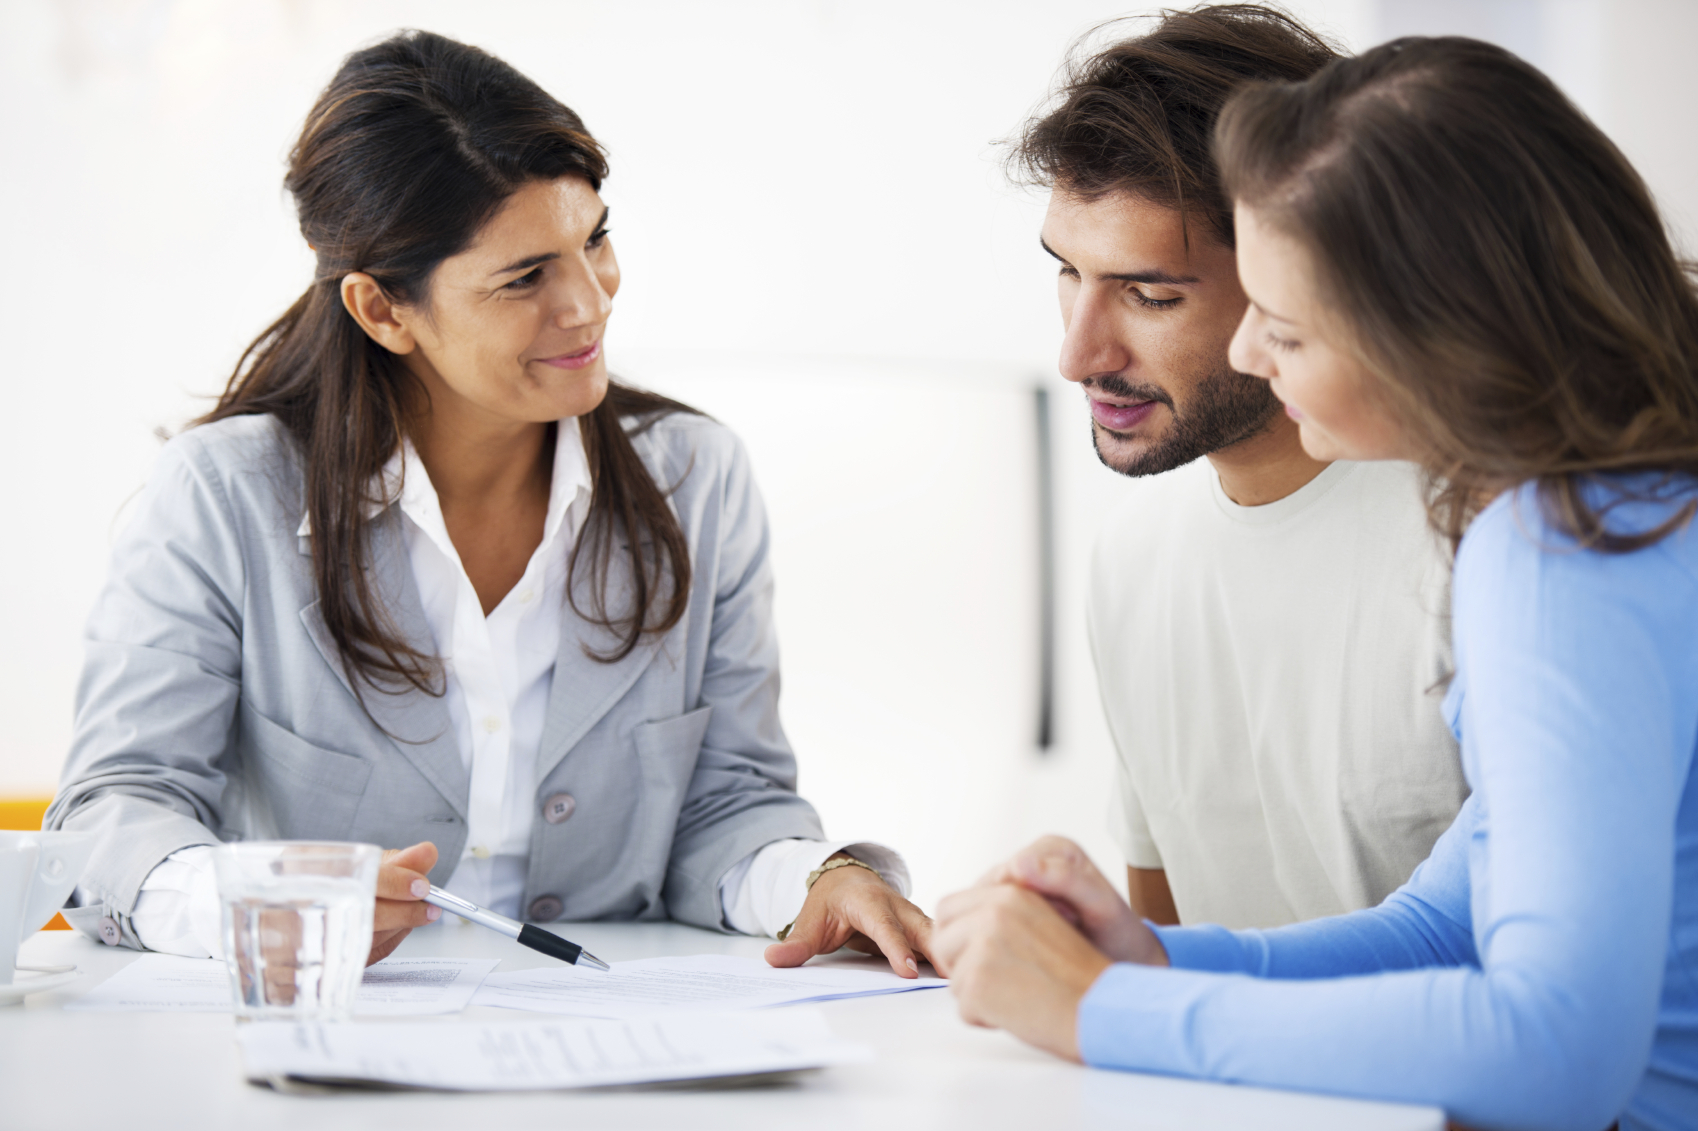 Do you need an Independent Expert's Report?